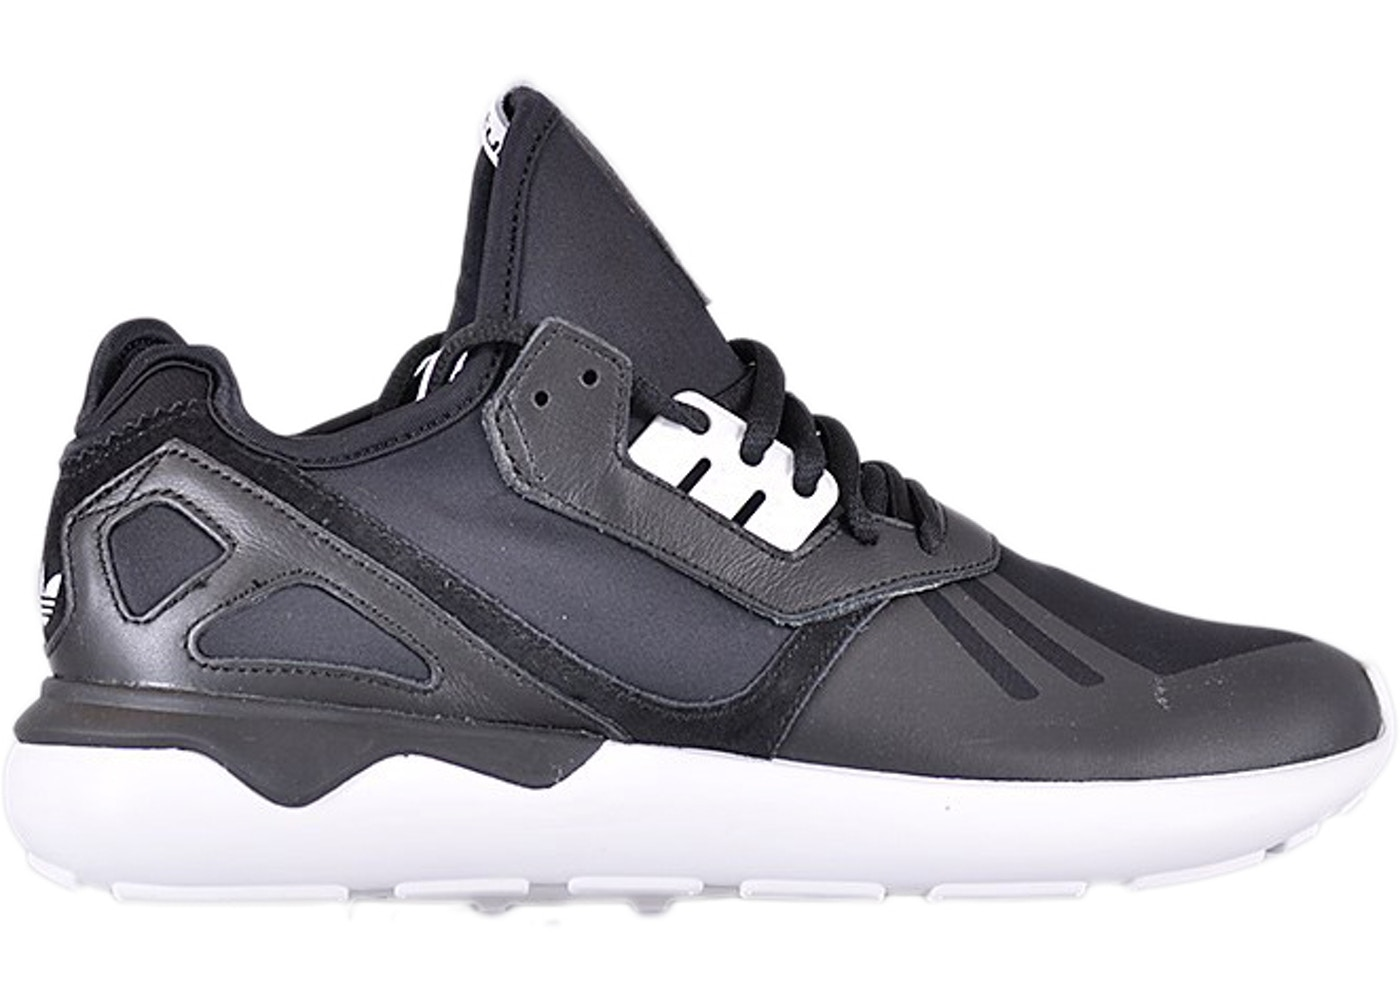 wholesale dealer 1b759 5e86b adidas Tubular Runner Core Black White